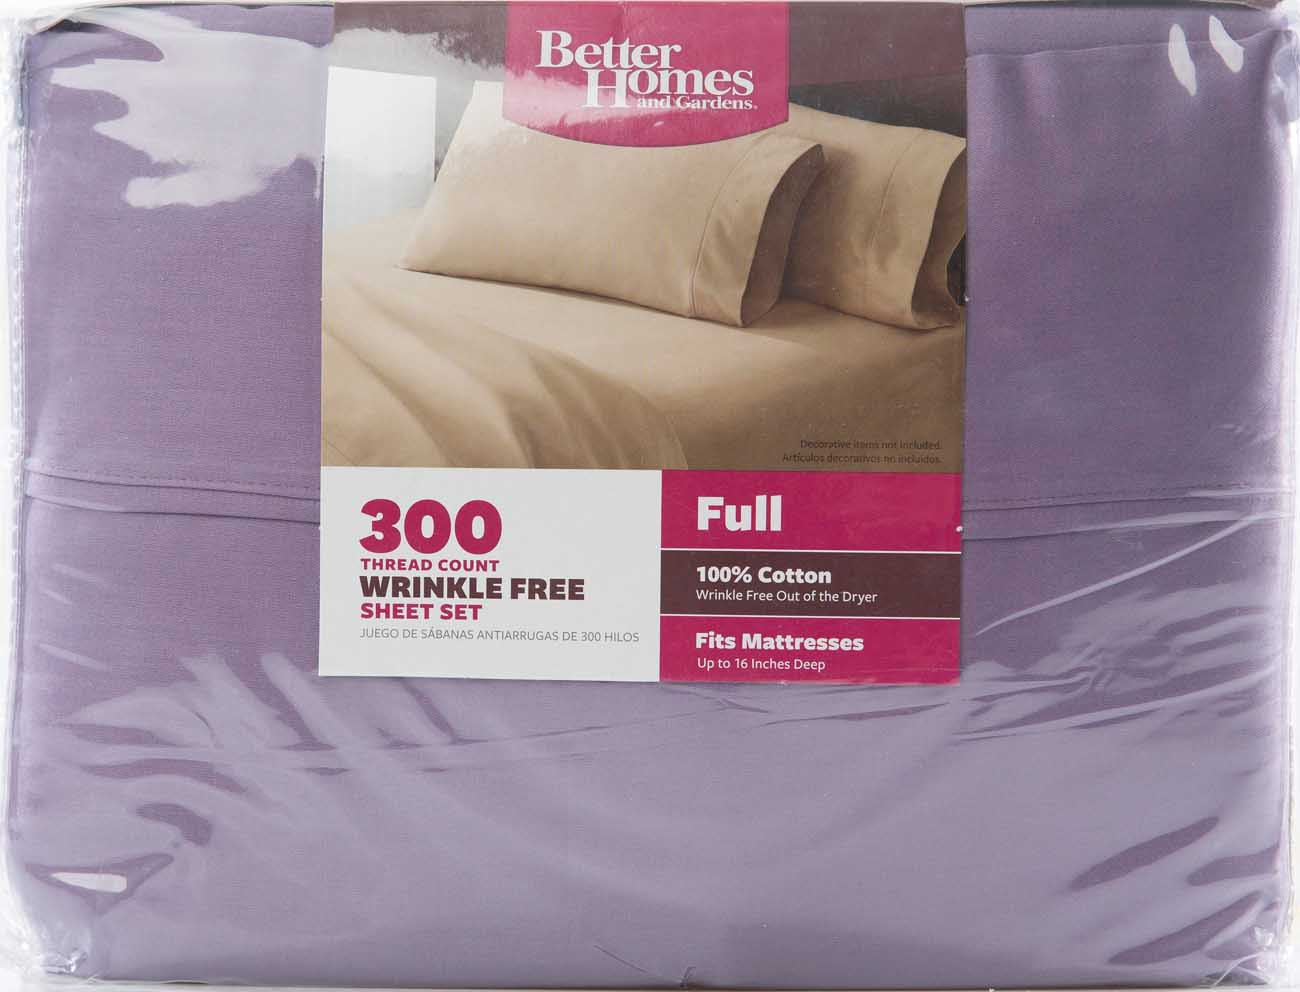 Better Homes And Gardens 300 Thread Count Sheet Collection   Walmart.com